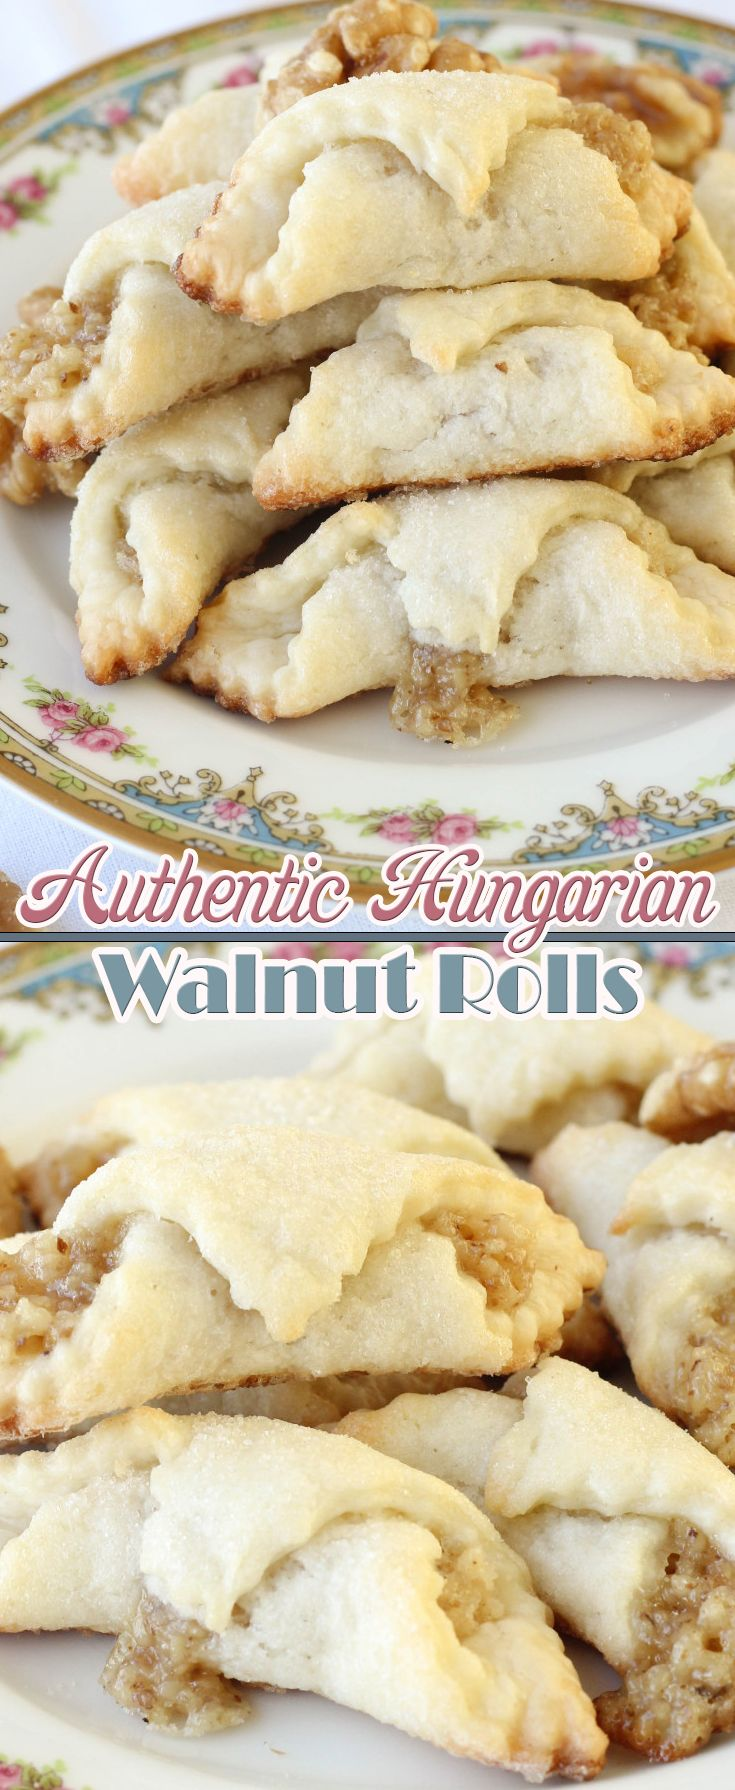 Authentic Hungarian Walnut Rolls                              …